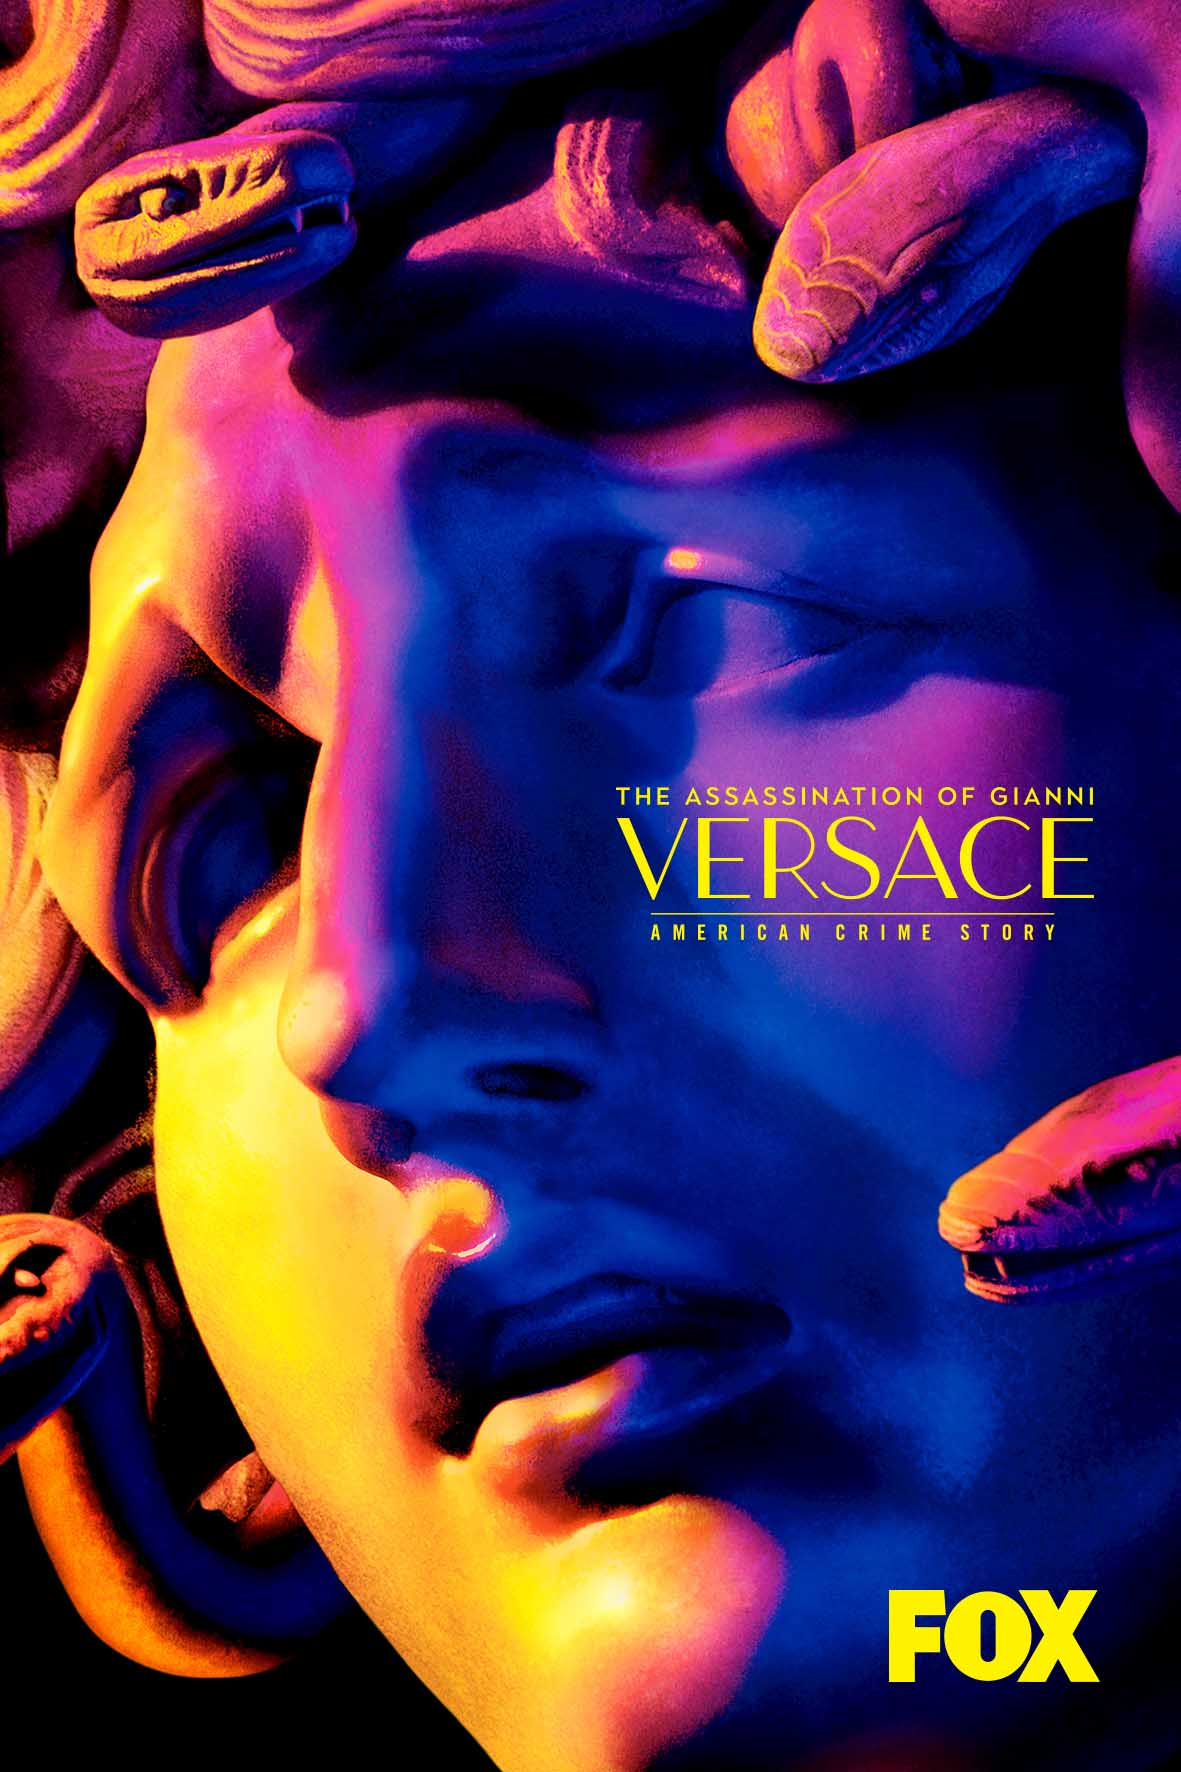 FOX_ACS Versace